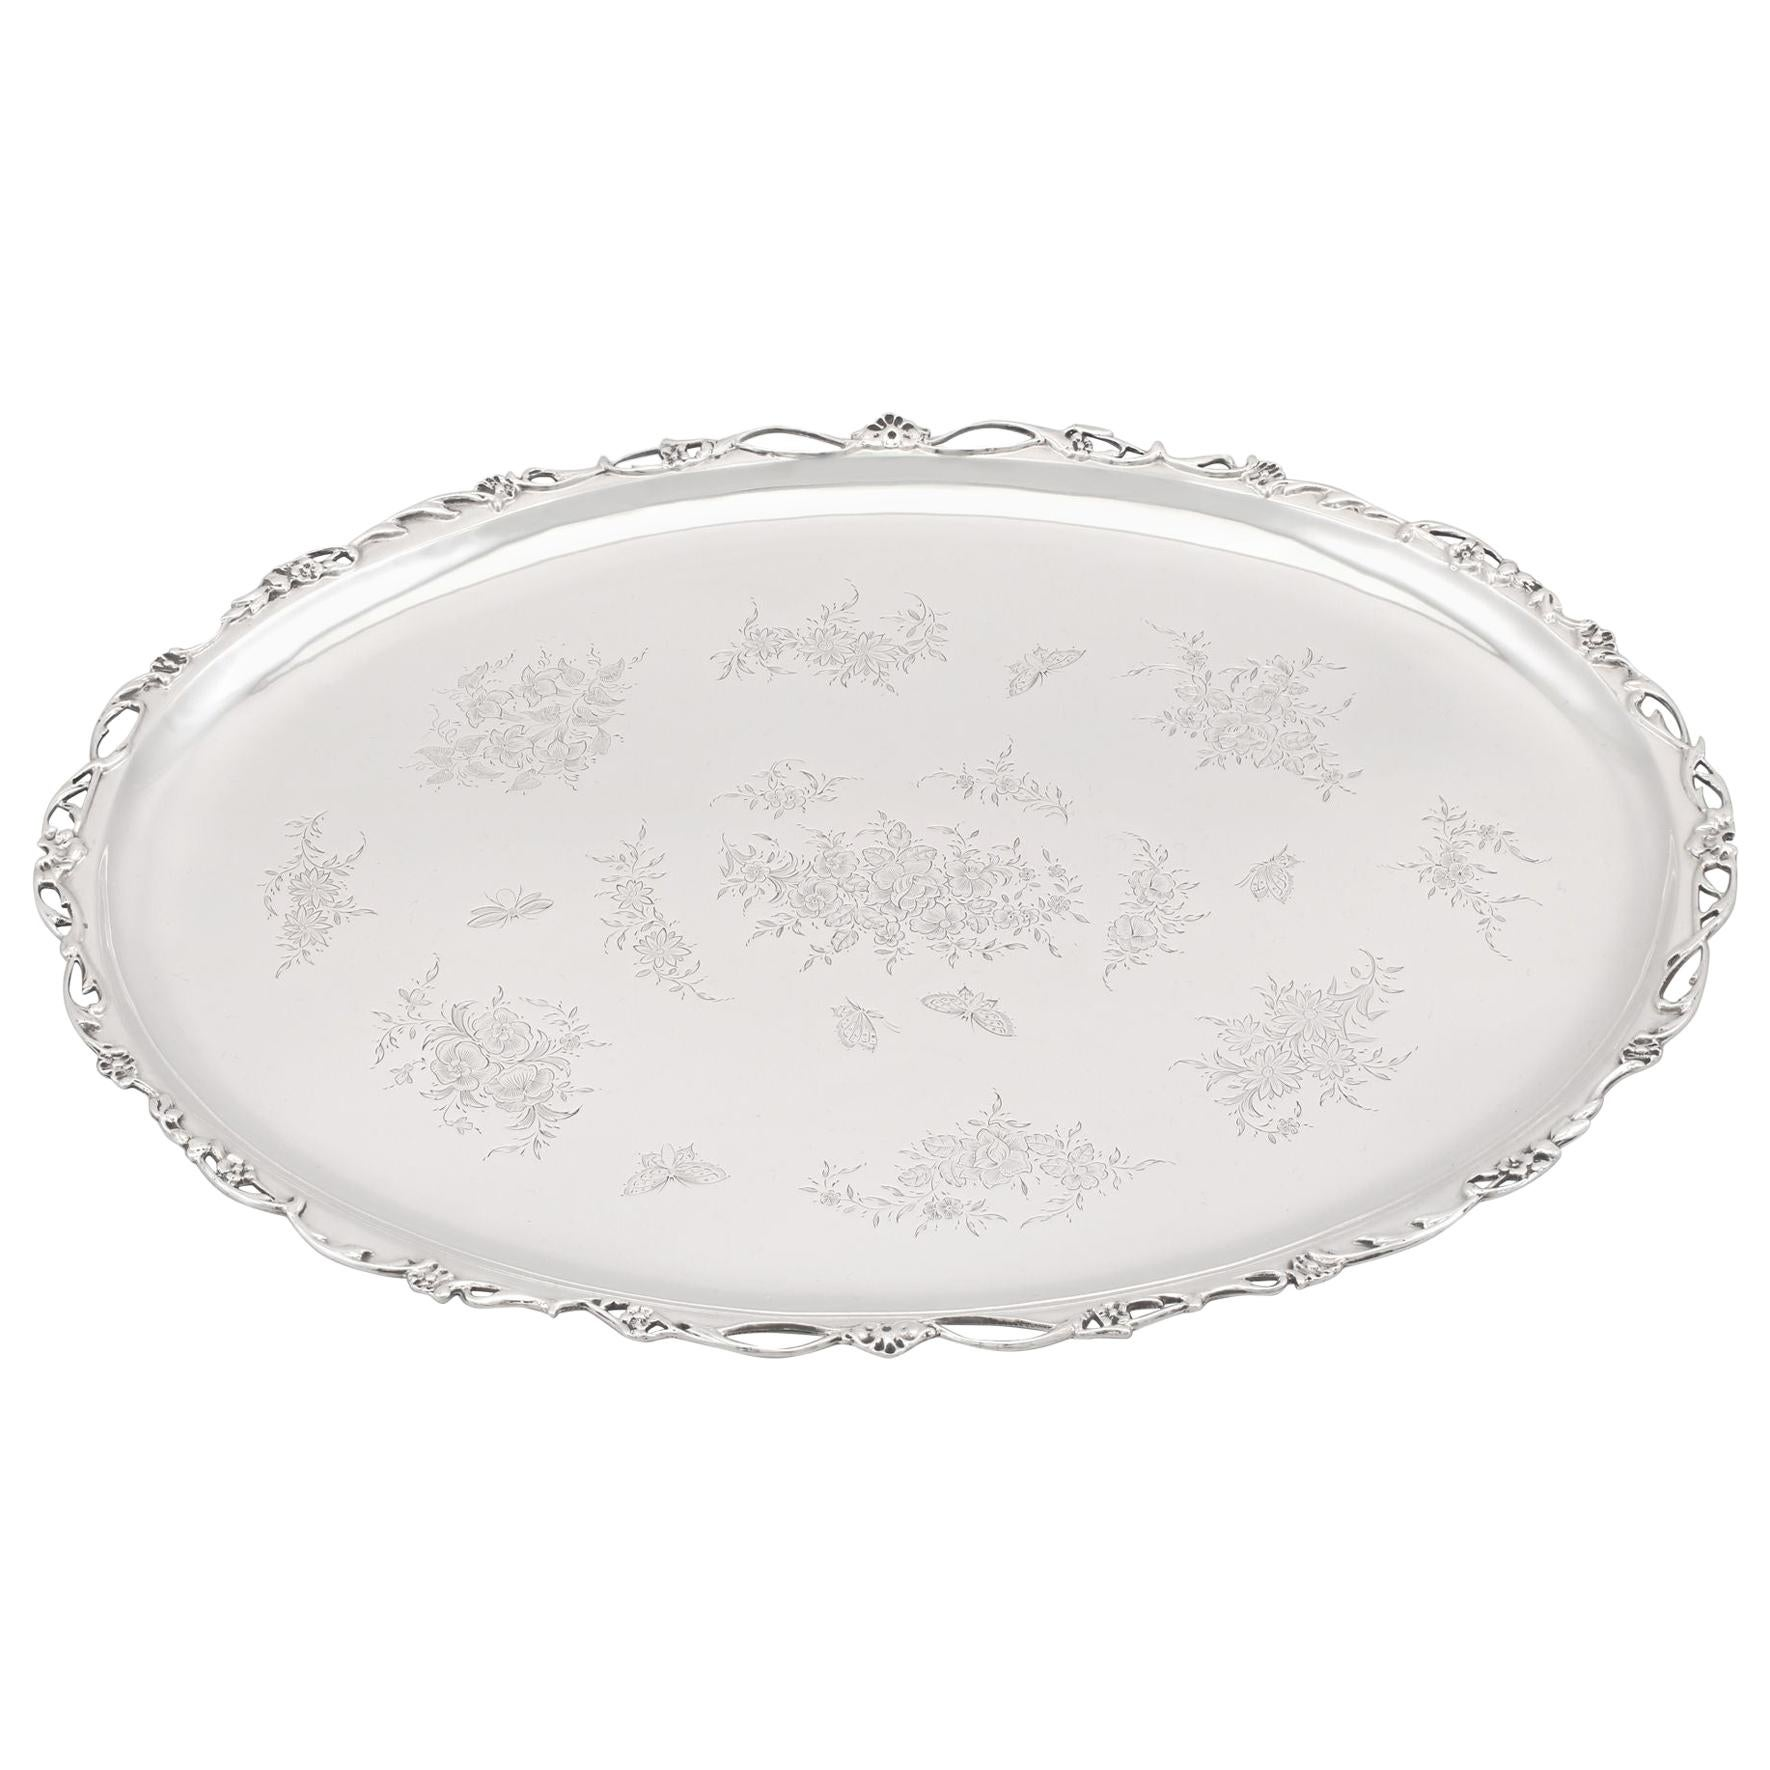 Antique Edwardian Sterling Silver Tray, 1903